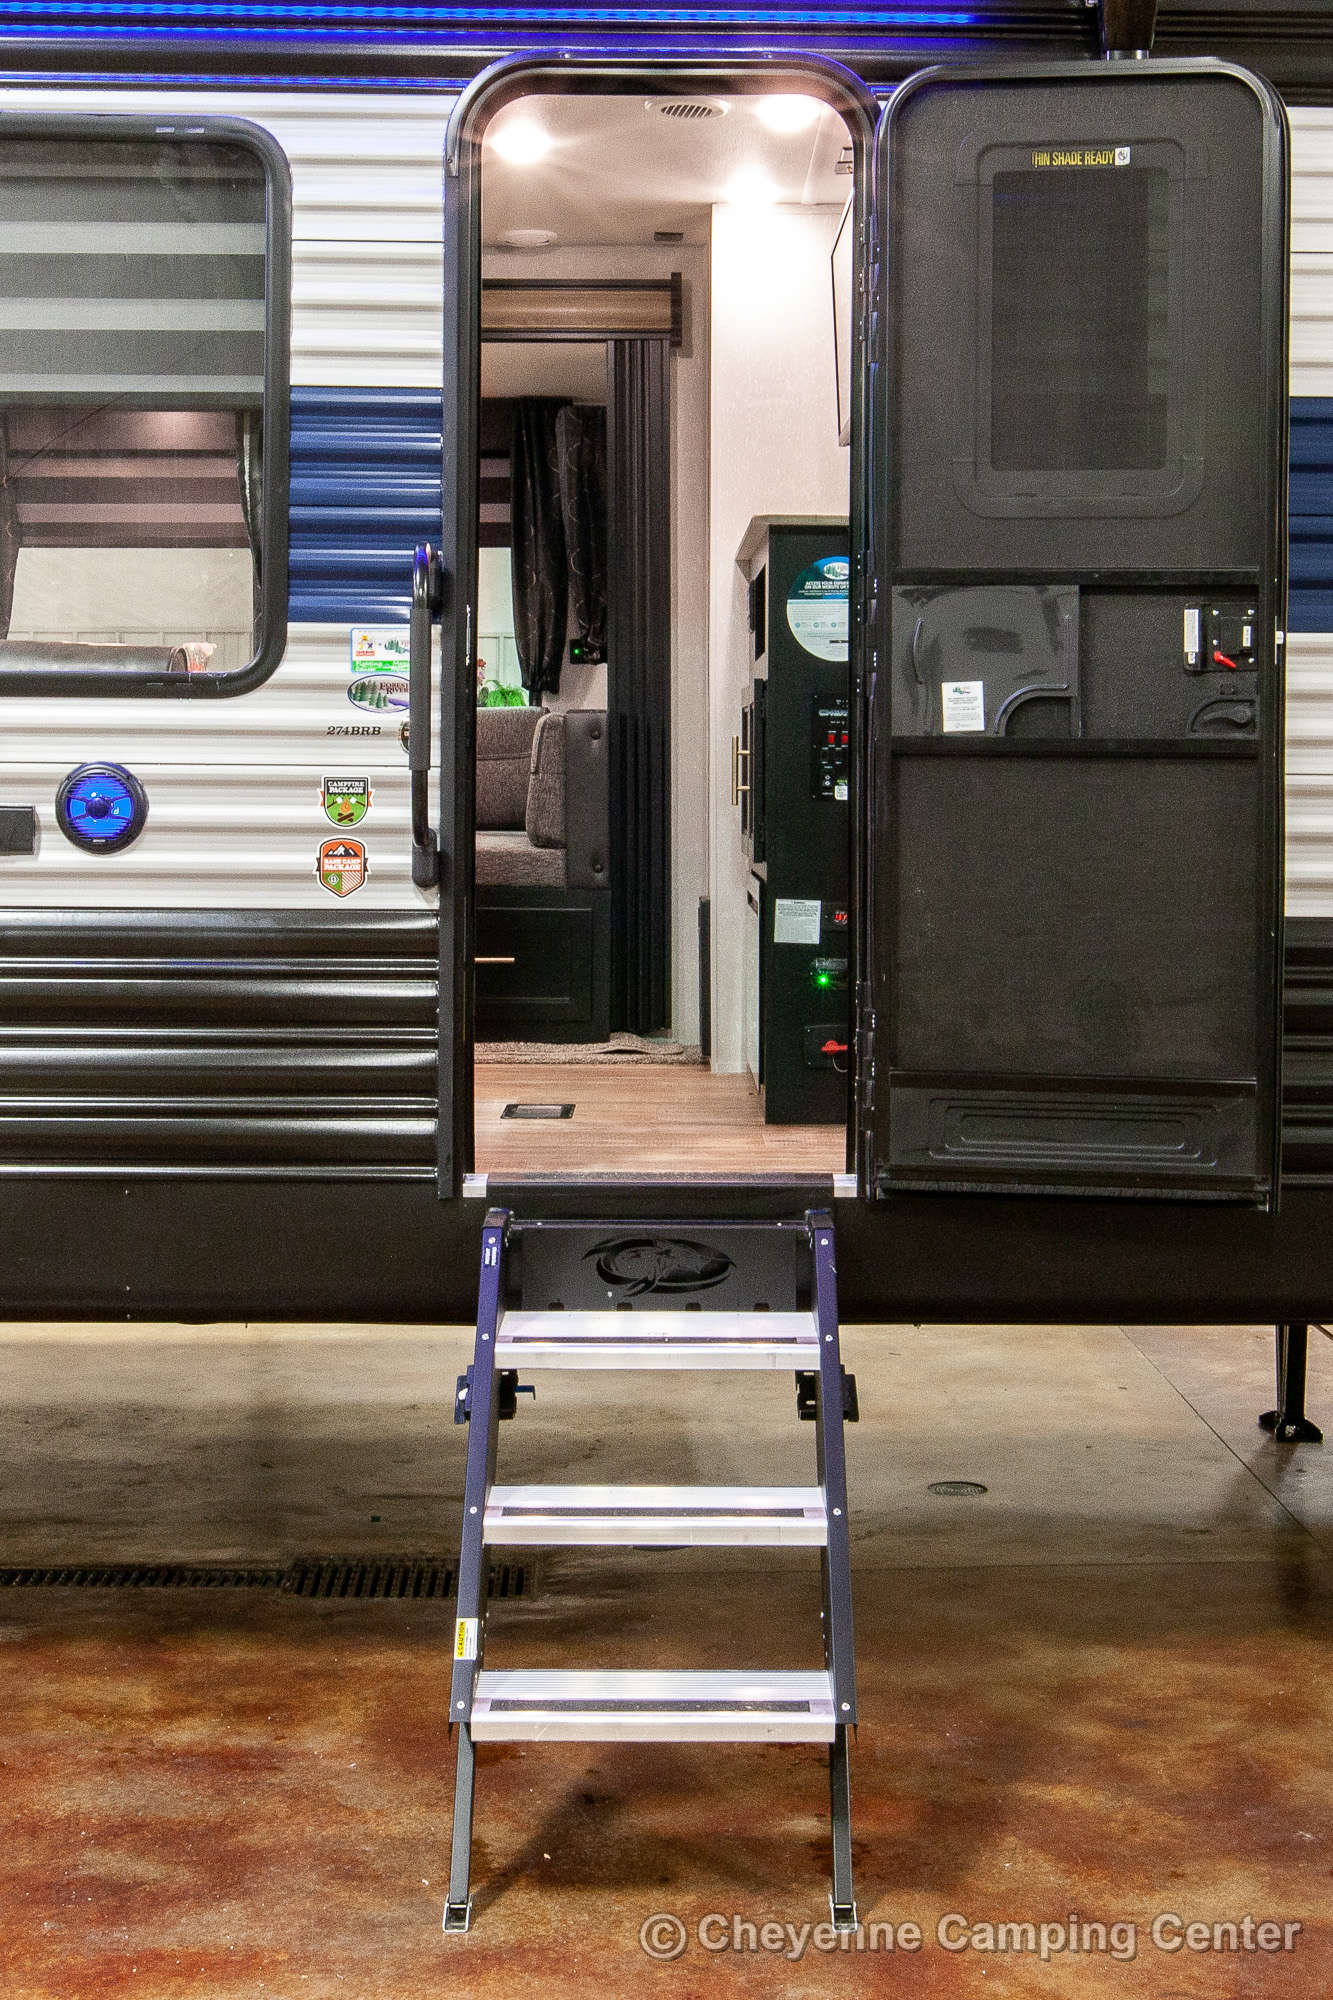 2022 Forest River Cherokee 274BRB Bunkhouse Travel Trailer Exterior Image